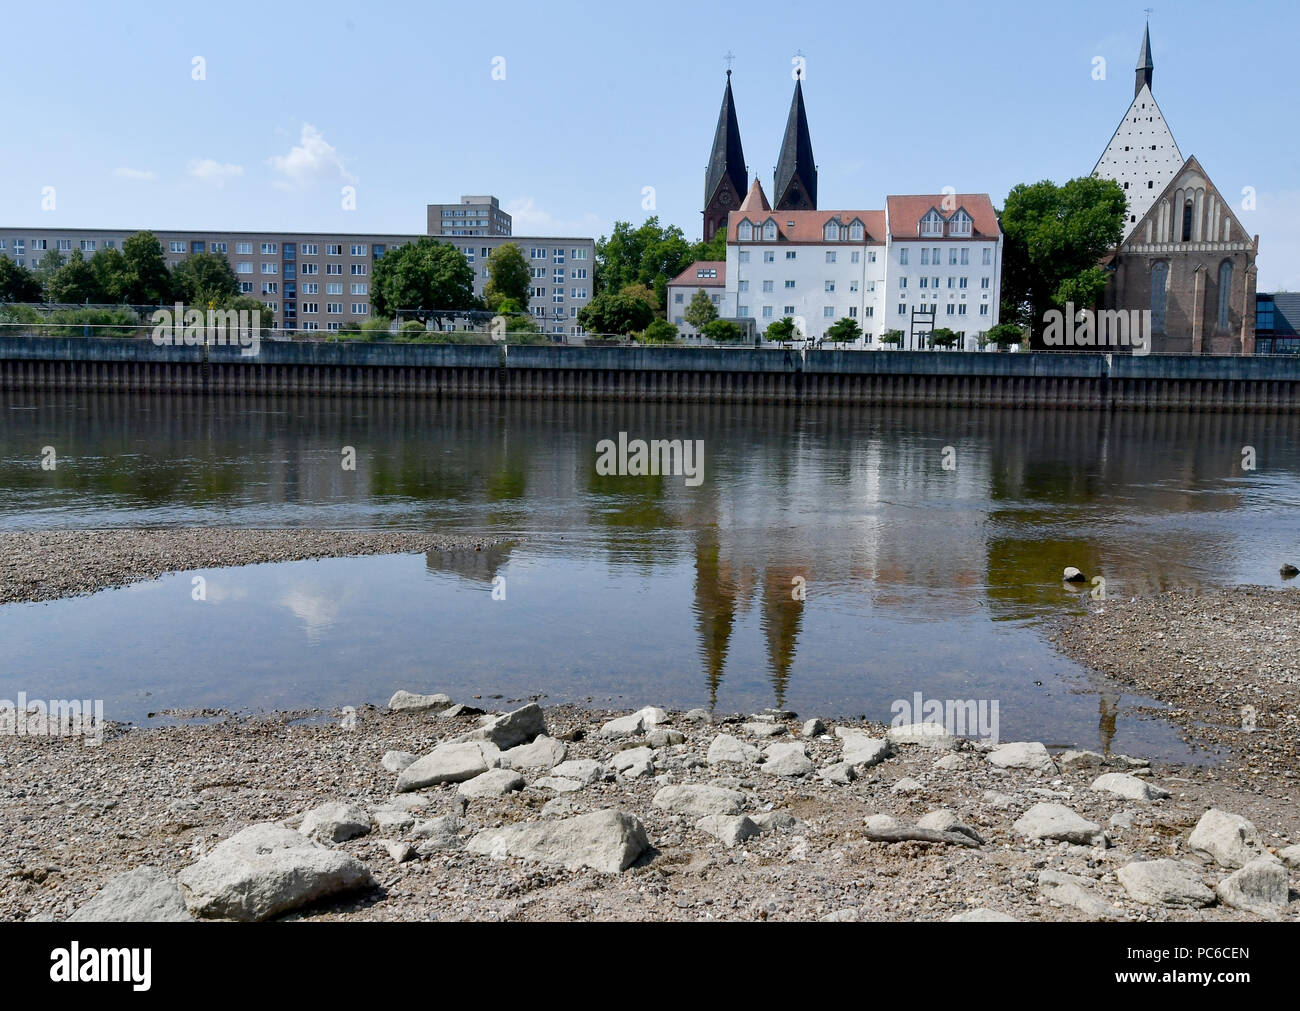 01 August 2018, Germany, Frankfurt (Oder): The Friedenskirche (l) and the Konzerthaus (r) in the former Franciscan monastery church are reflected in the low tide of the Oder. Photo: Bernd Settnik/dpa-Zentralbild/dpa - Stock Image